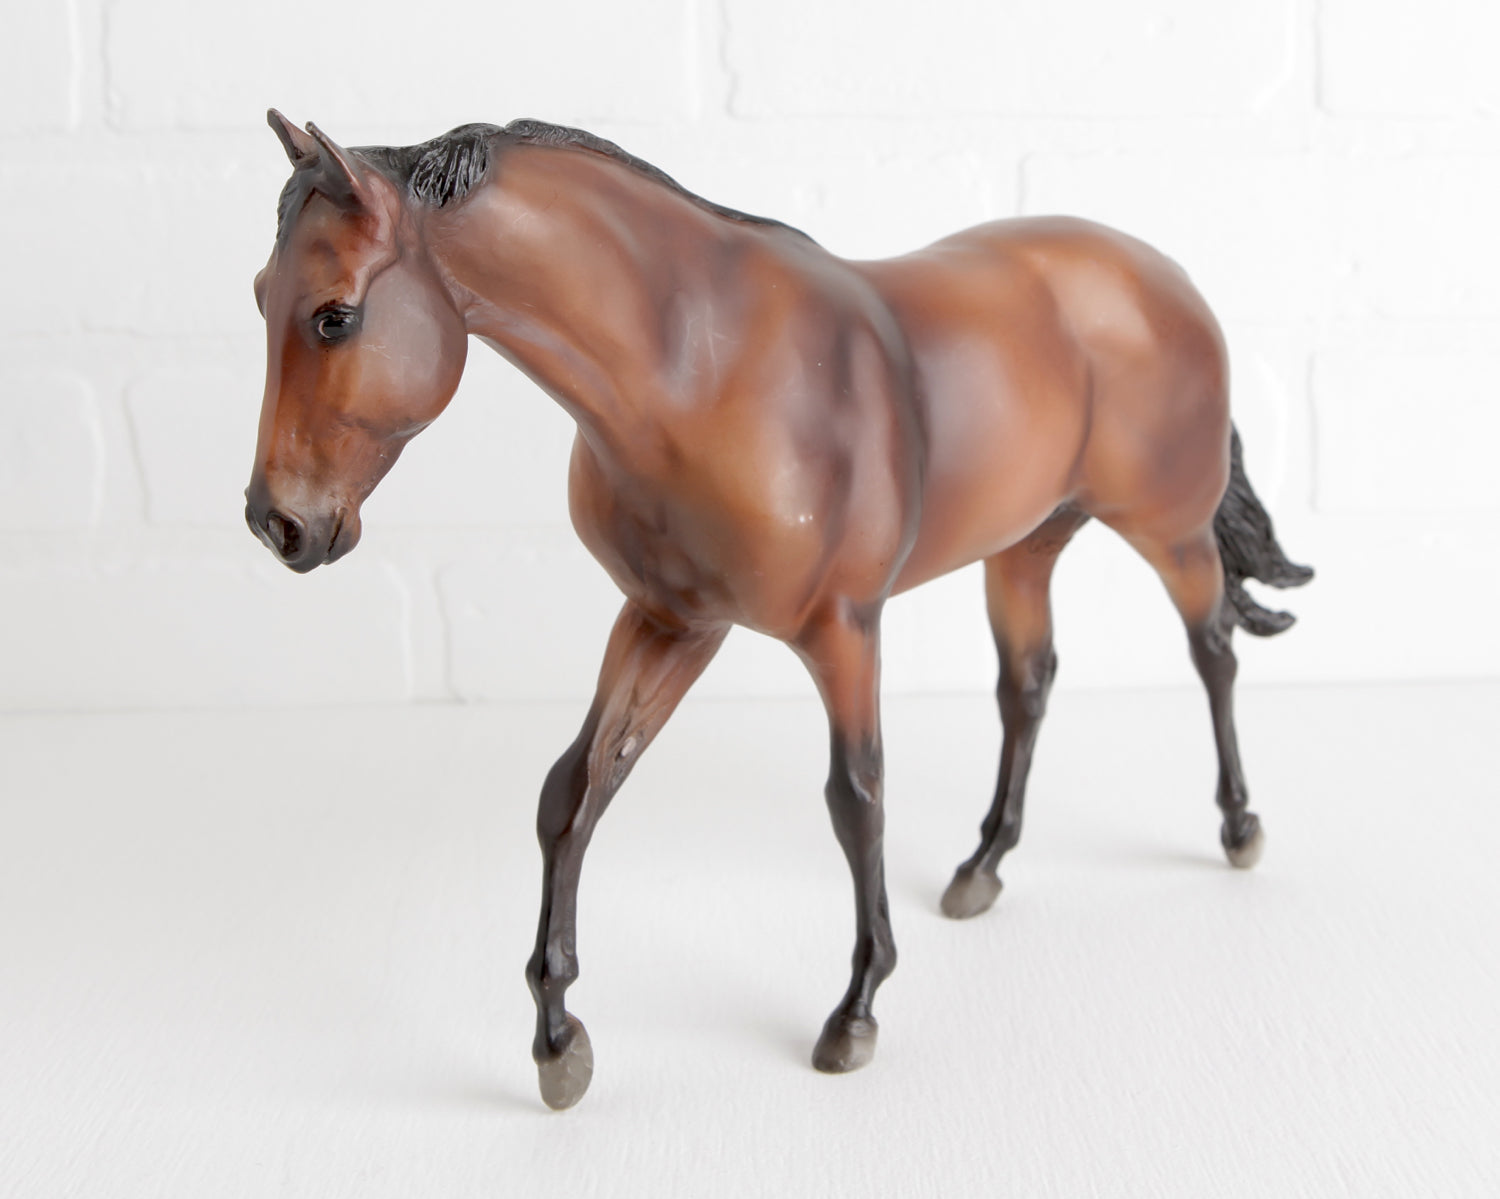 Breyer Bay Seabiscuit #1188 at Lobster Bisque Vintage